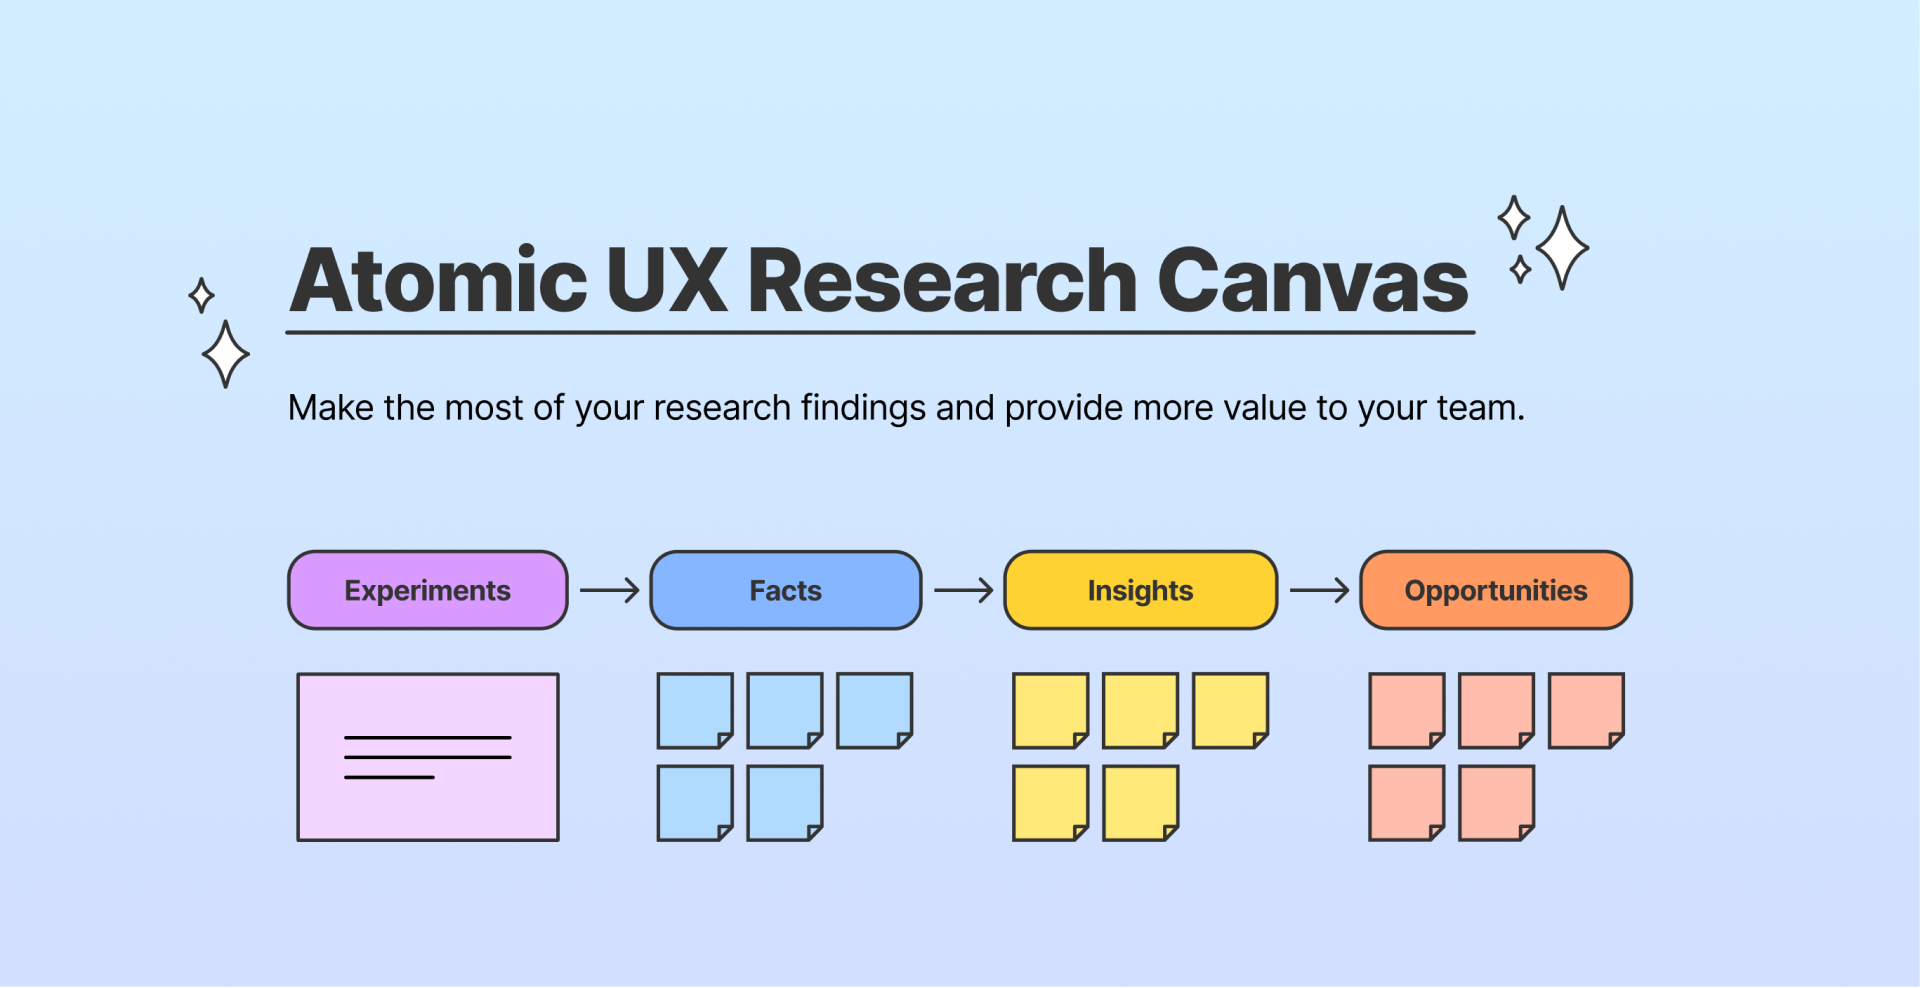 atomic ux research canvas, a figma template